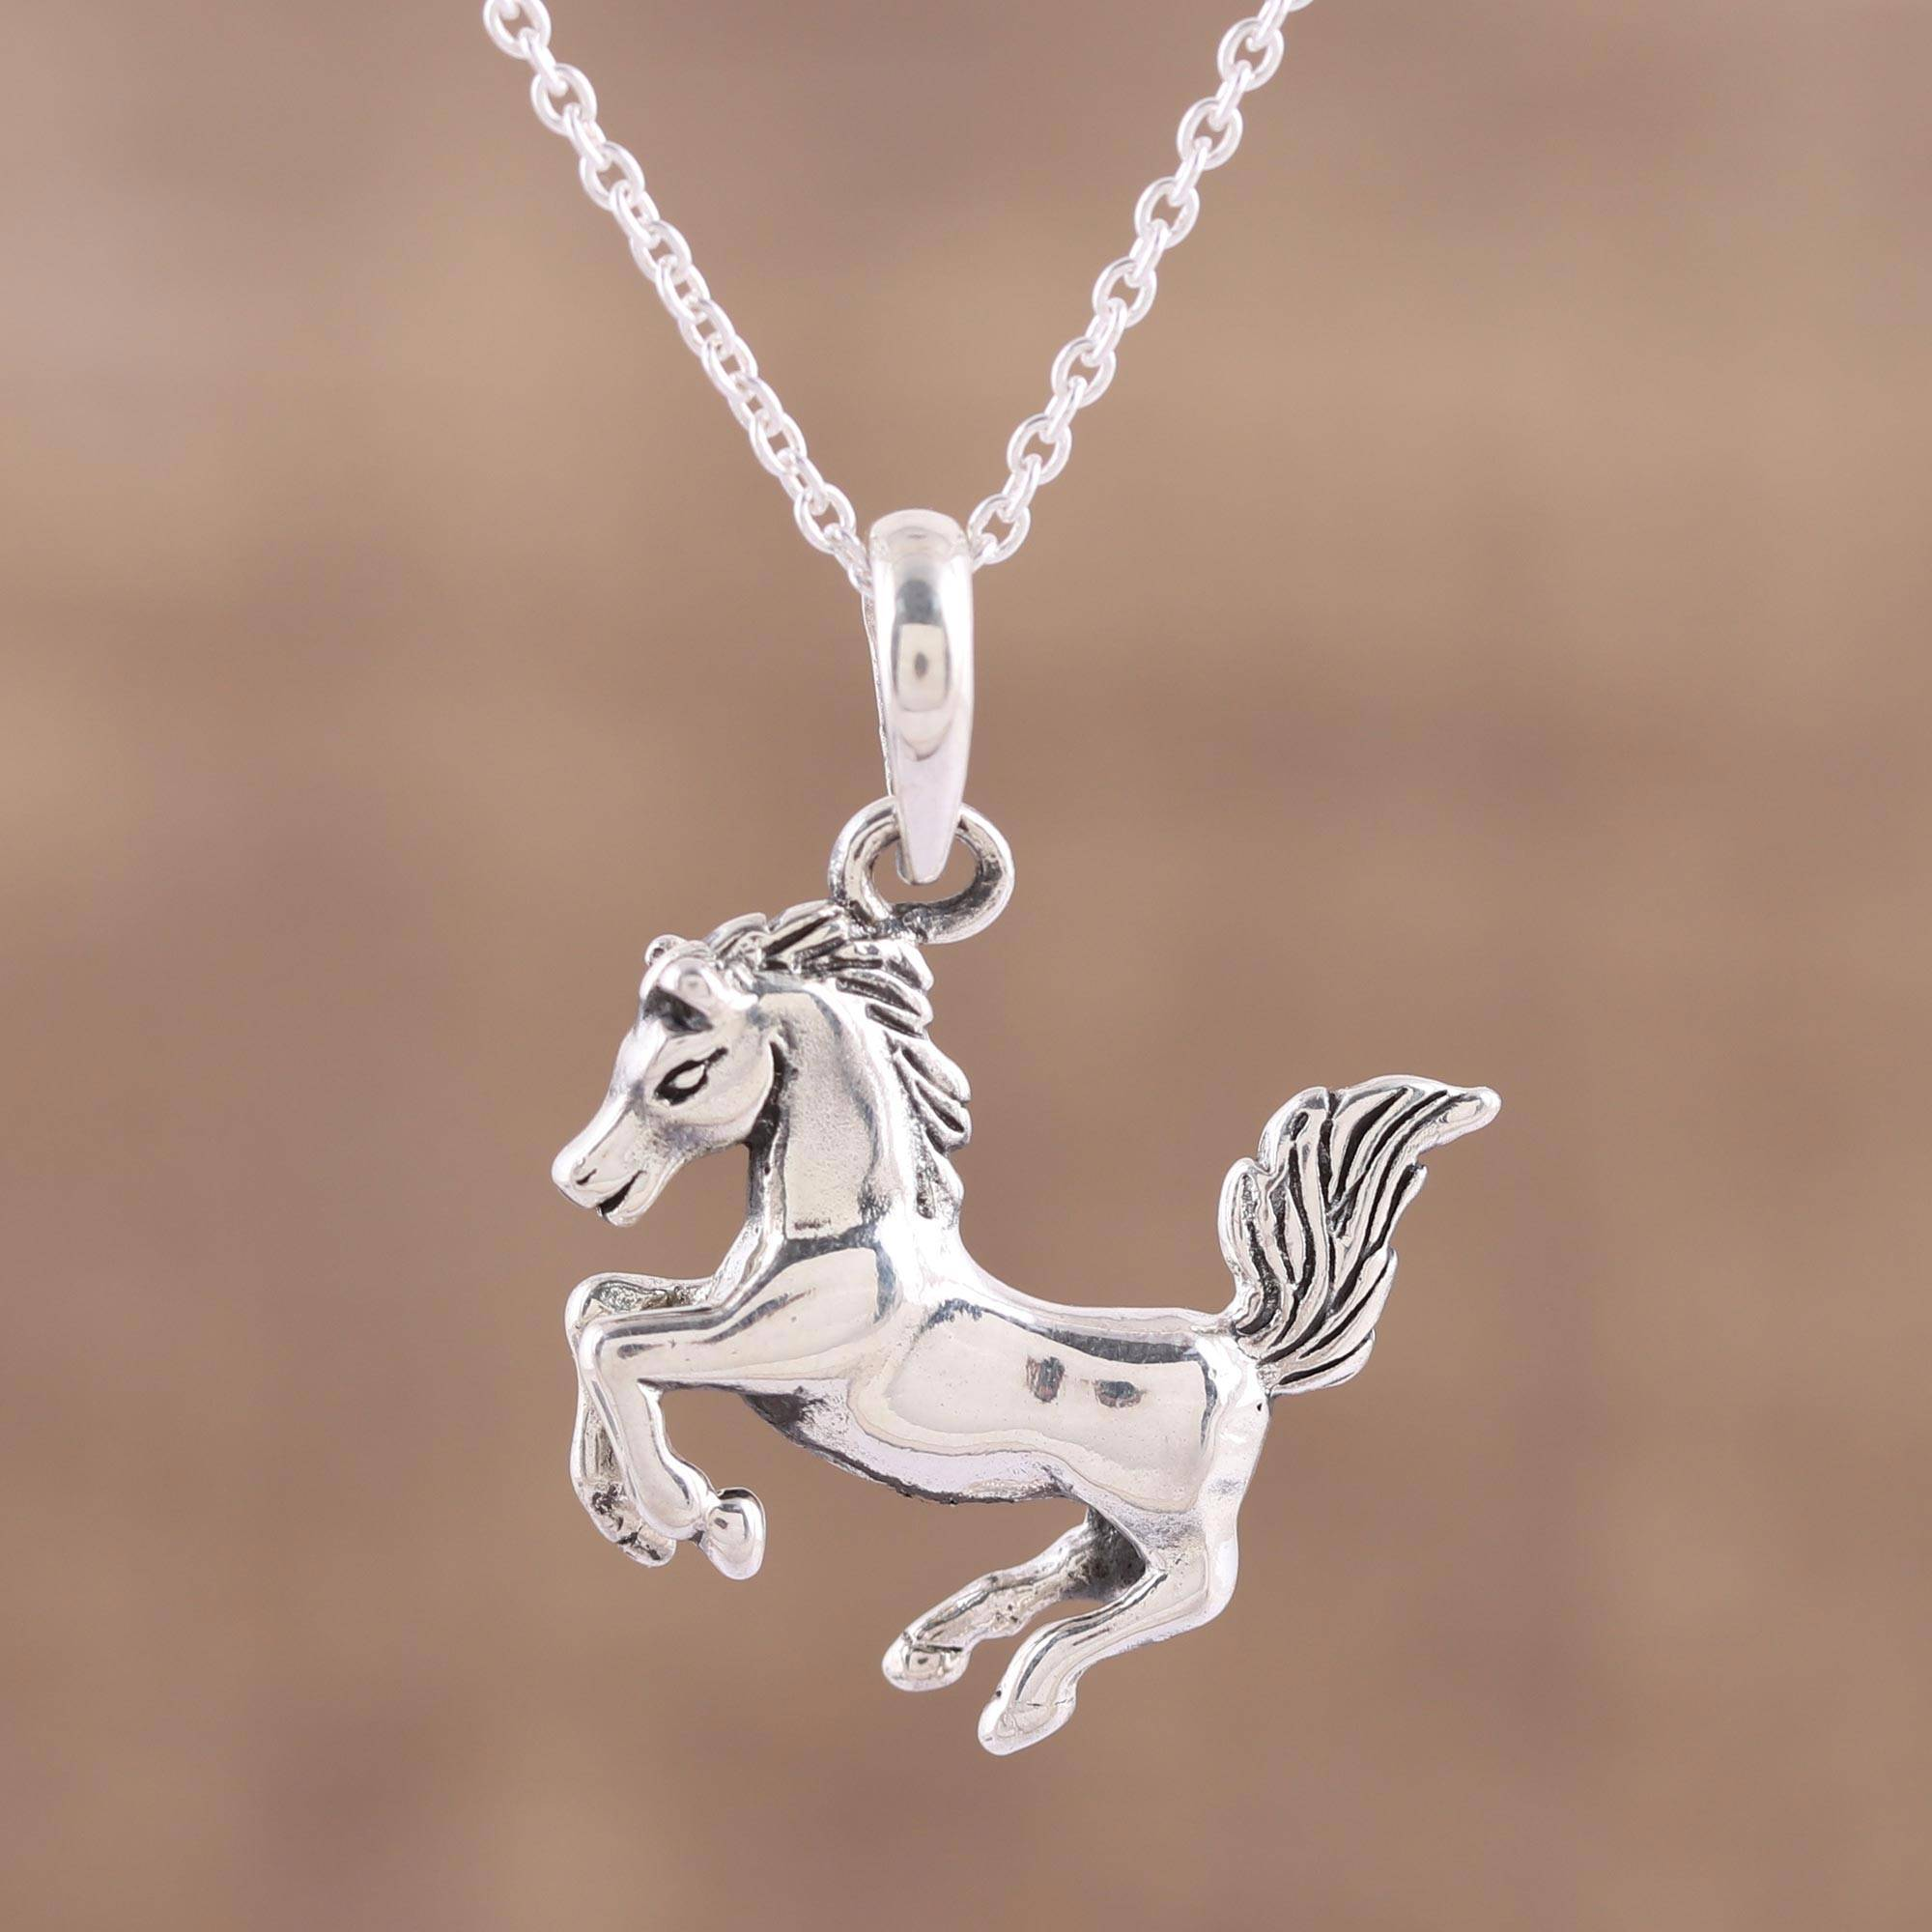 horse chain small necklaces pendant helen sea mango products shop tree see necklace